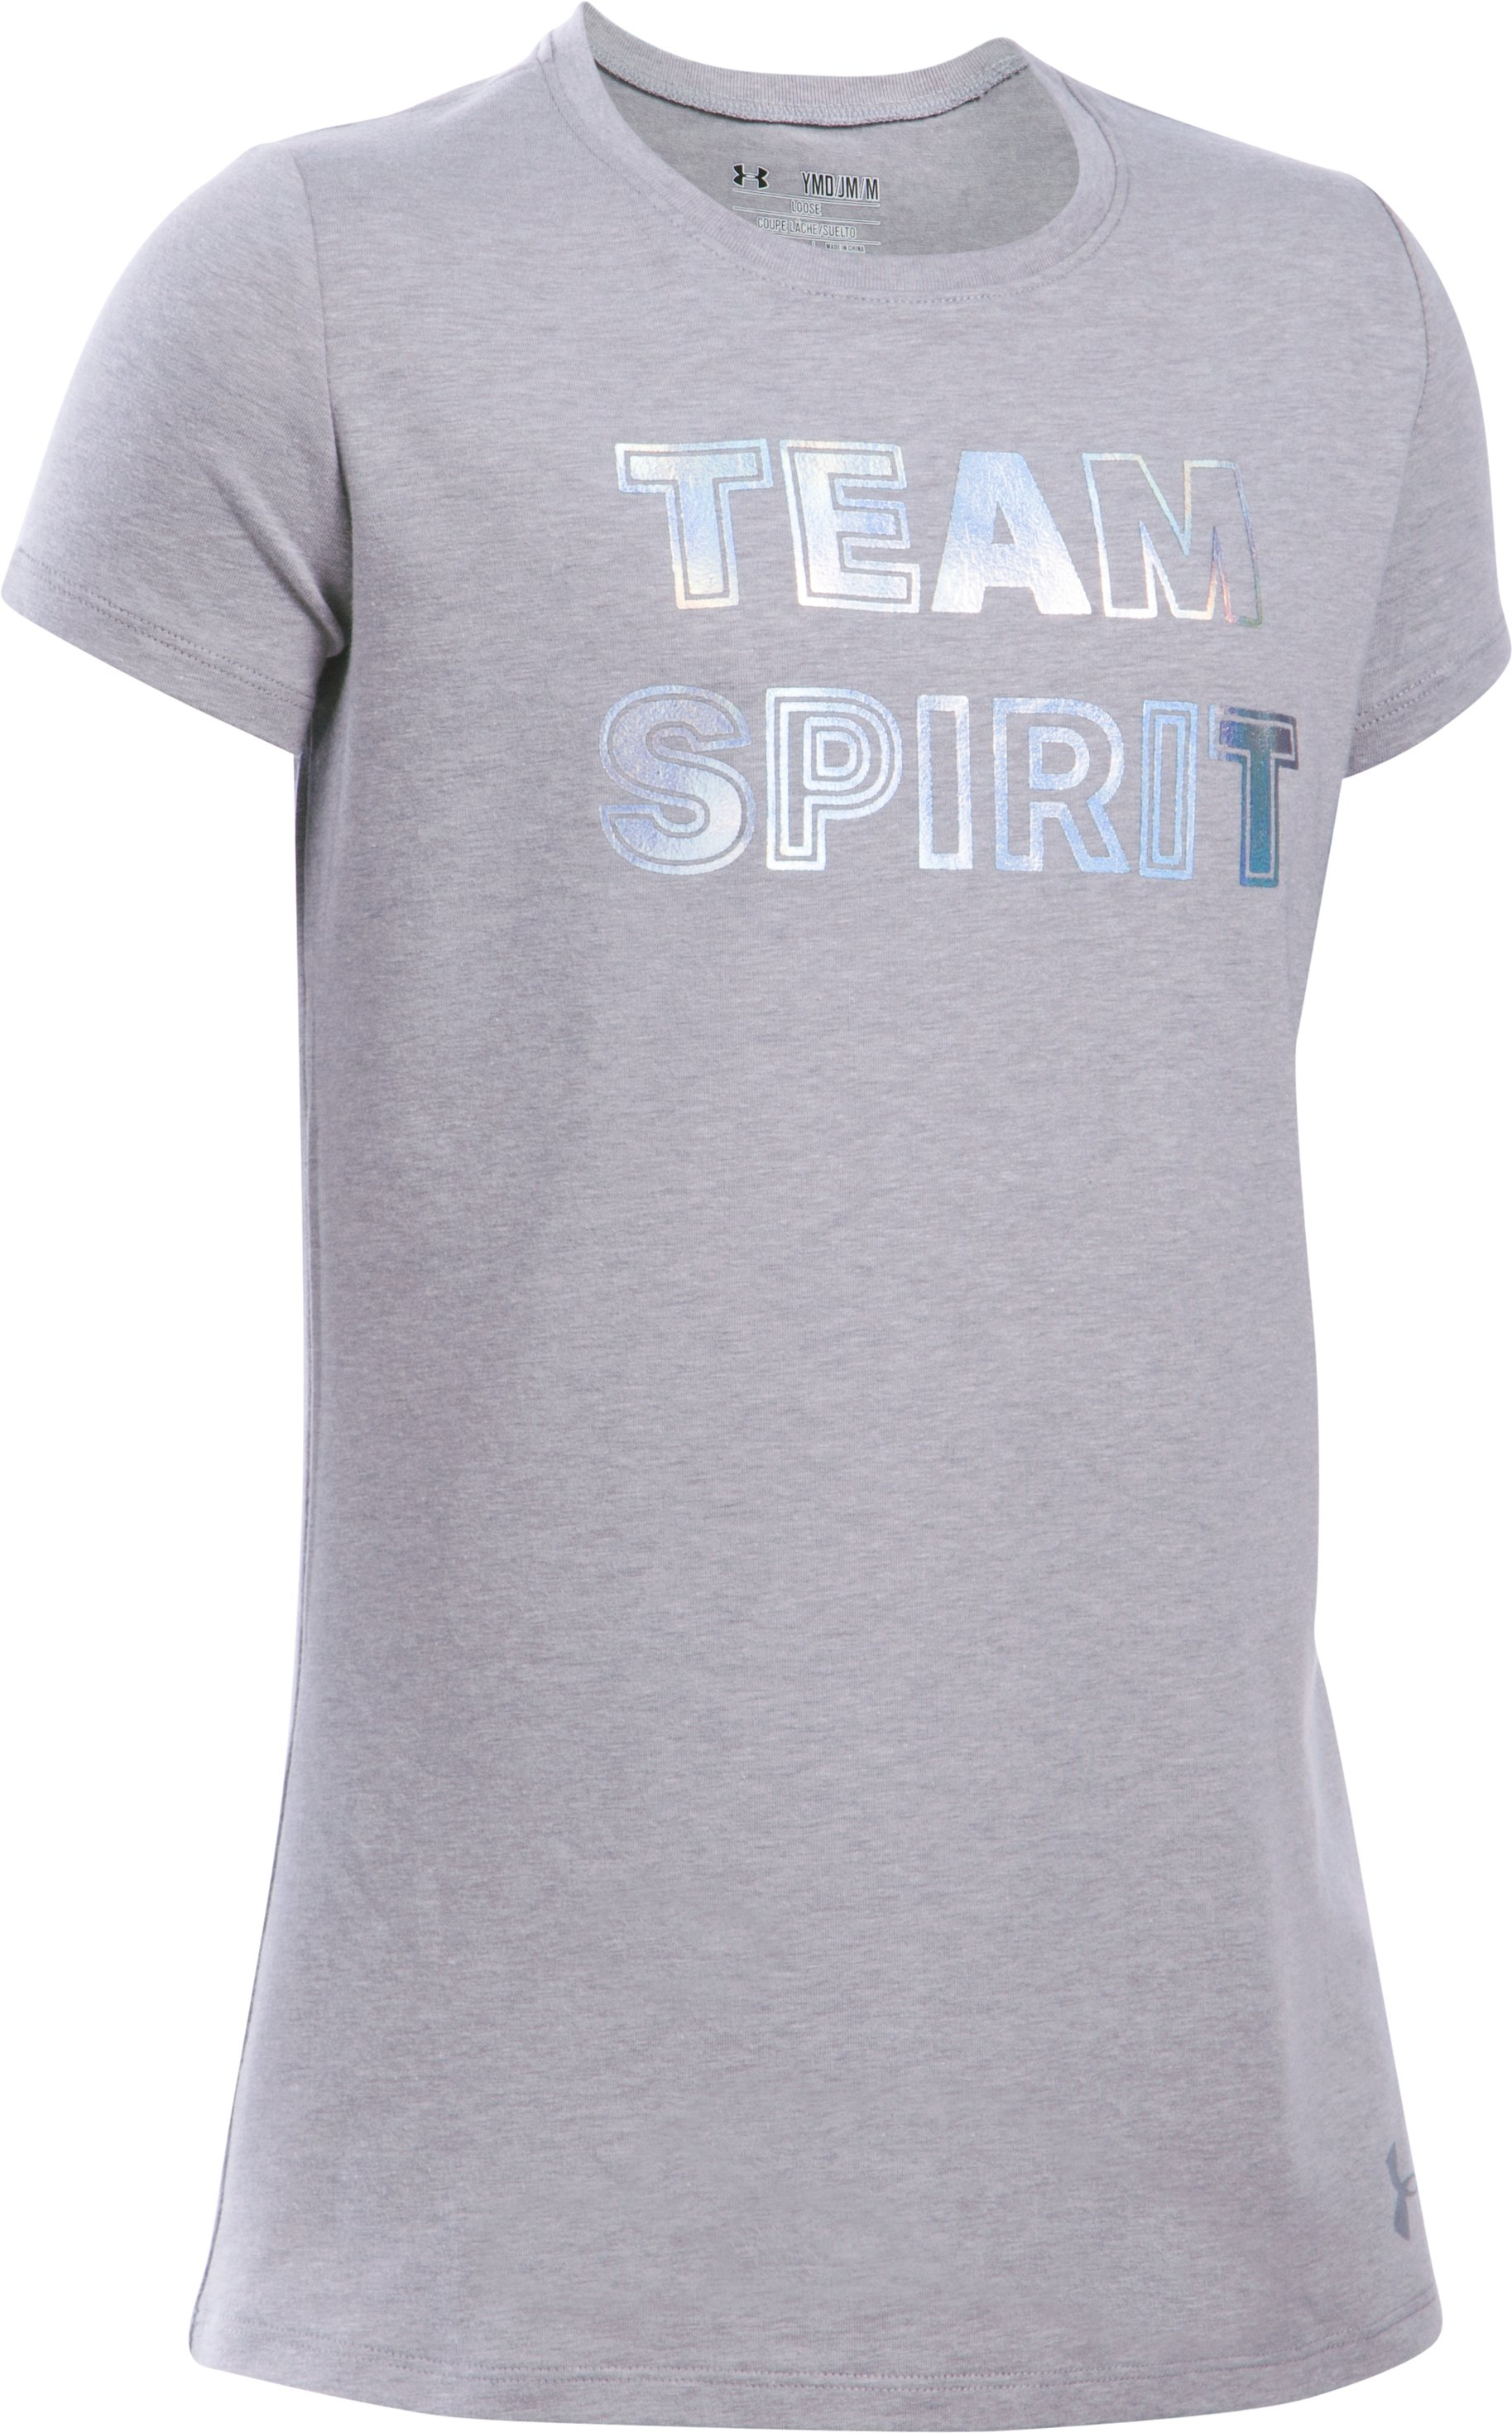 Girls' UA Team Spirit Short Sleeve T-Shirt, True Gray Heather